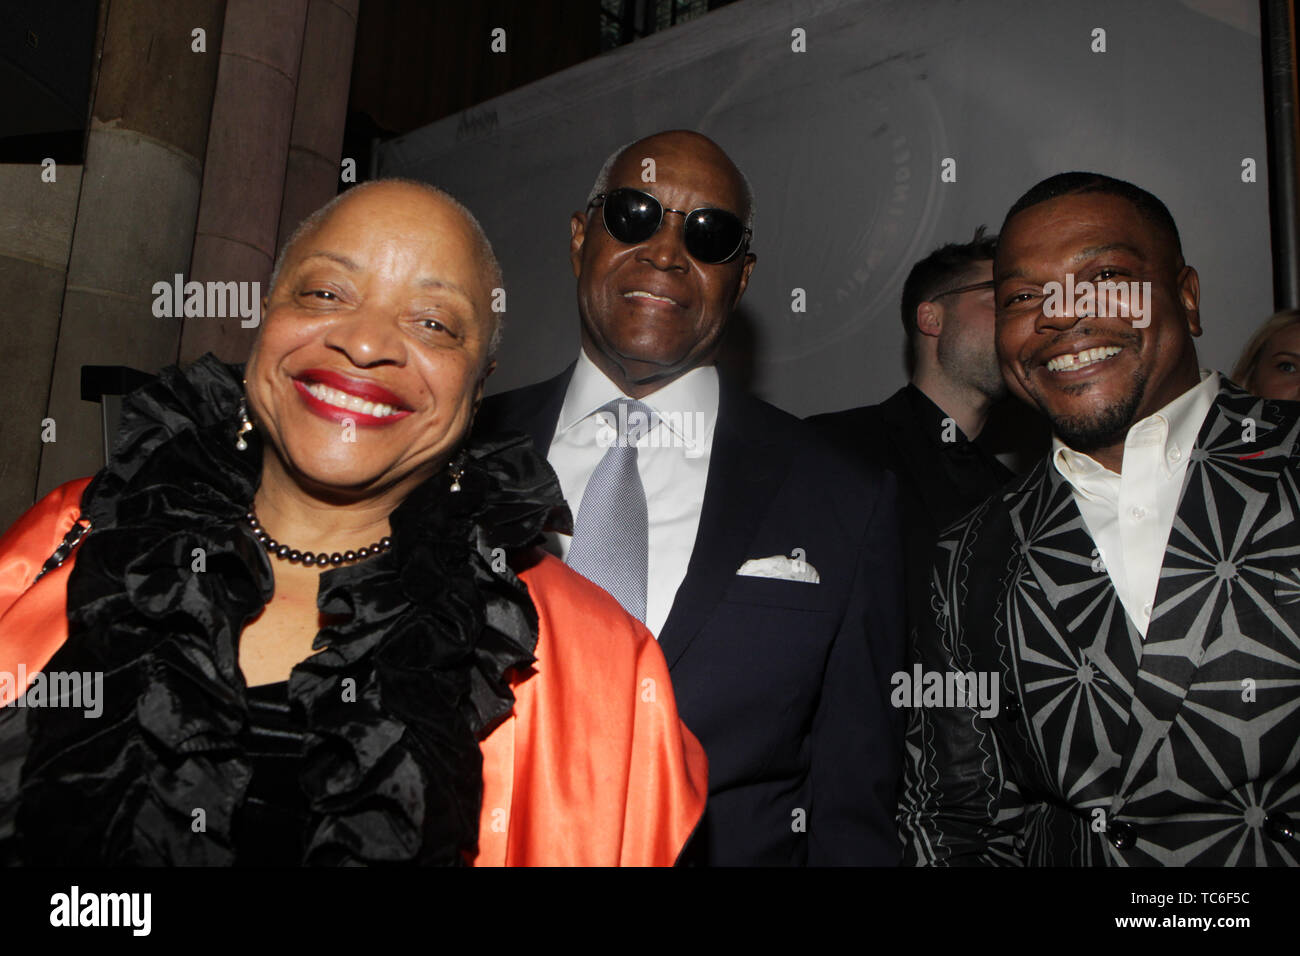 NEW YORK, NEW YORK-JUNE 4: (L-R) Photographic Historian/Author/Arts Educator Dr. Deb Willis, Dr. Hank Thomas and Visual Artist Kehinde Wiley (Honoree) attend the 2019 Gordon Parks Foundation Awards Dinner and Auction Red Carpet celebrating the Arts & Social Justice held at Cipriani 42nd Street on June 4, 2019 in New York City.  Photo Credit: Mpi43/MediaPunch - Stock Image